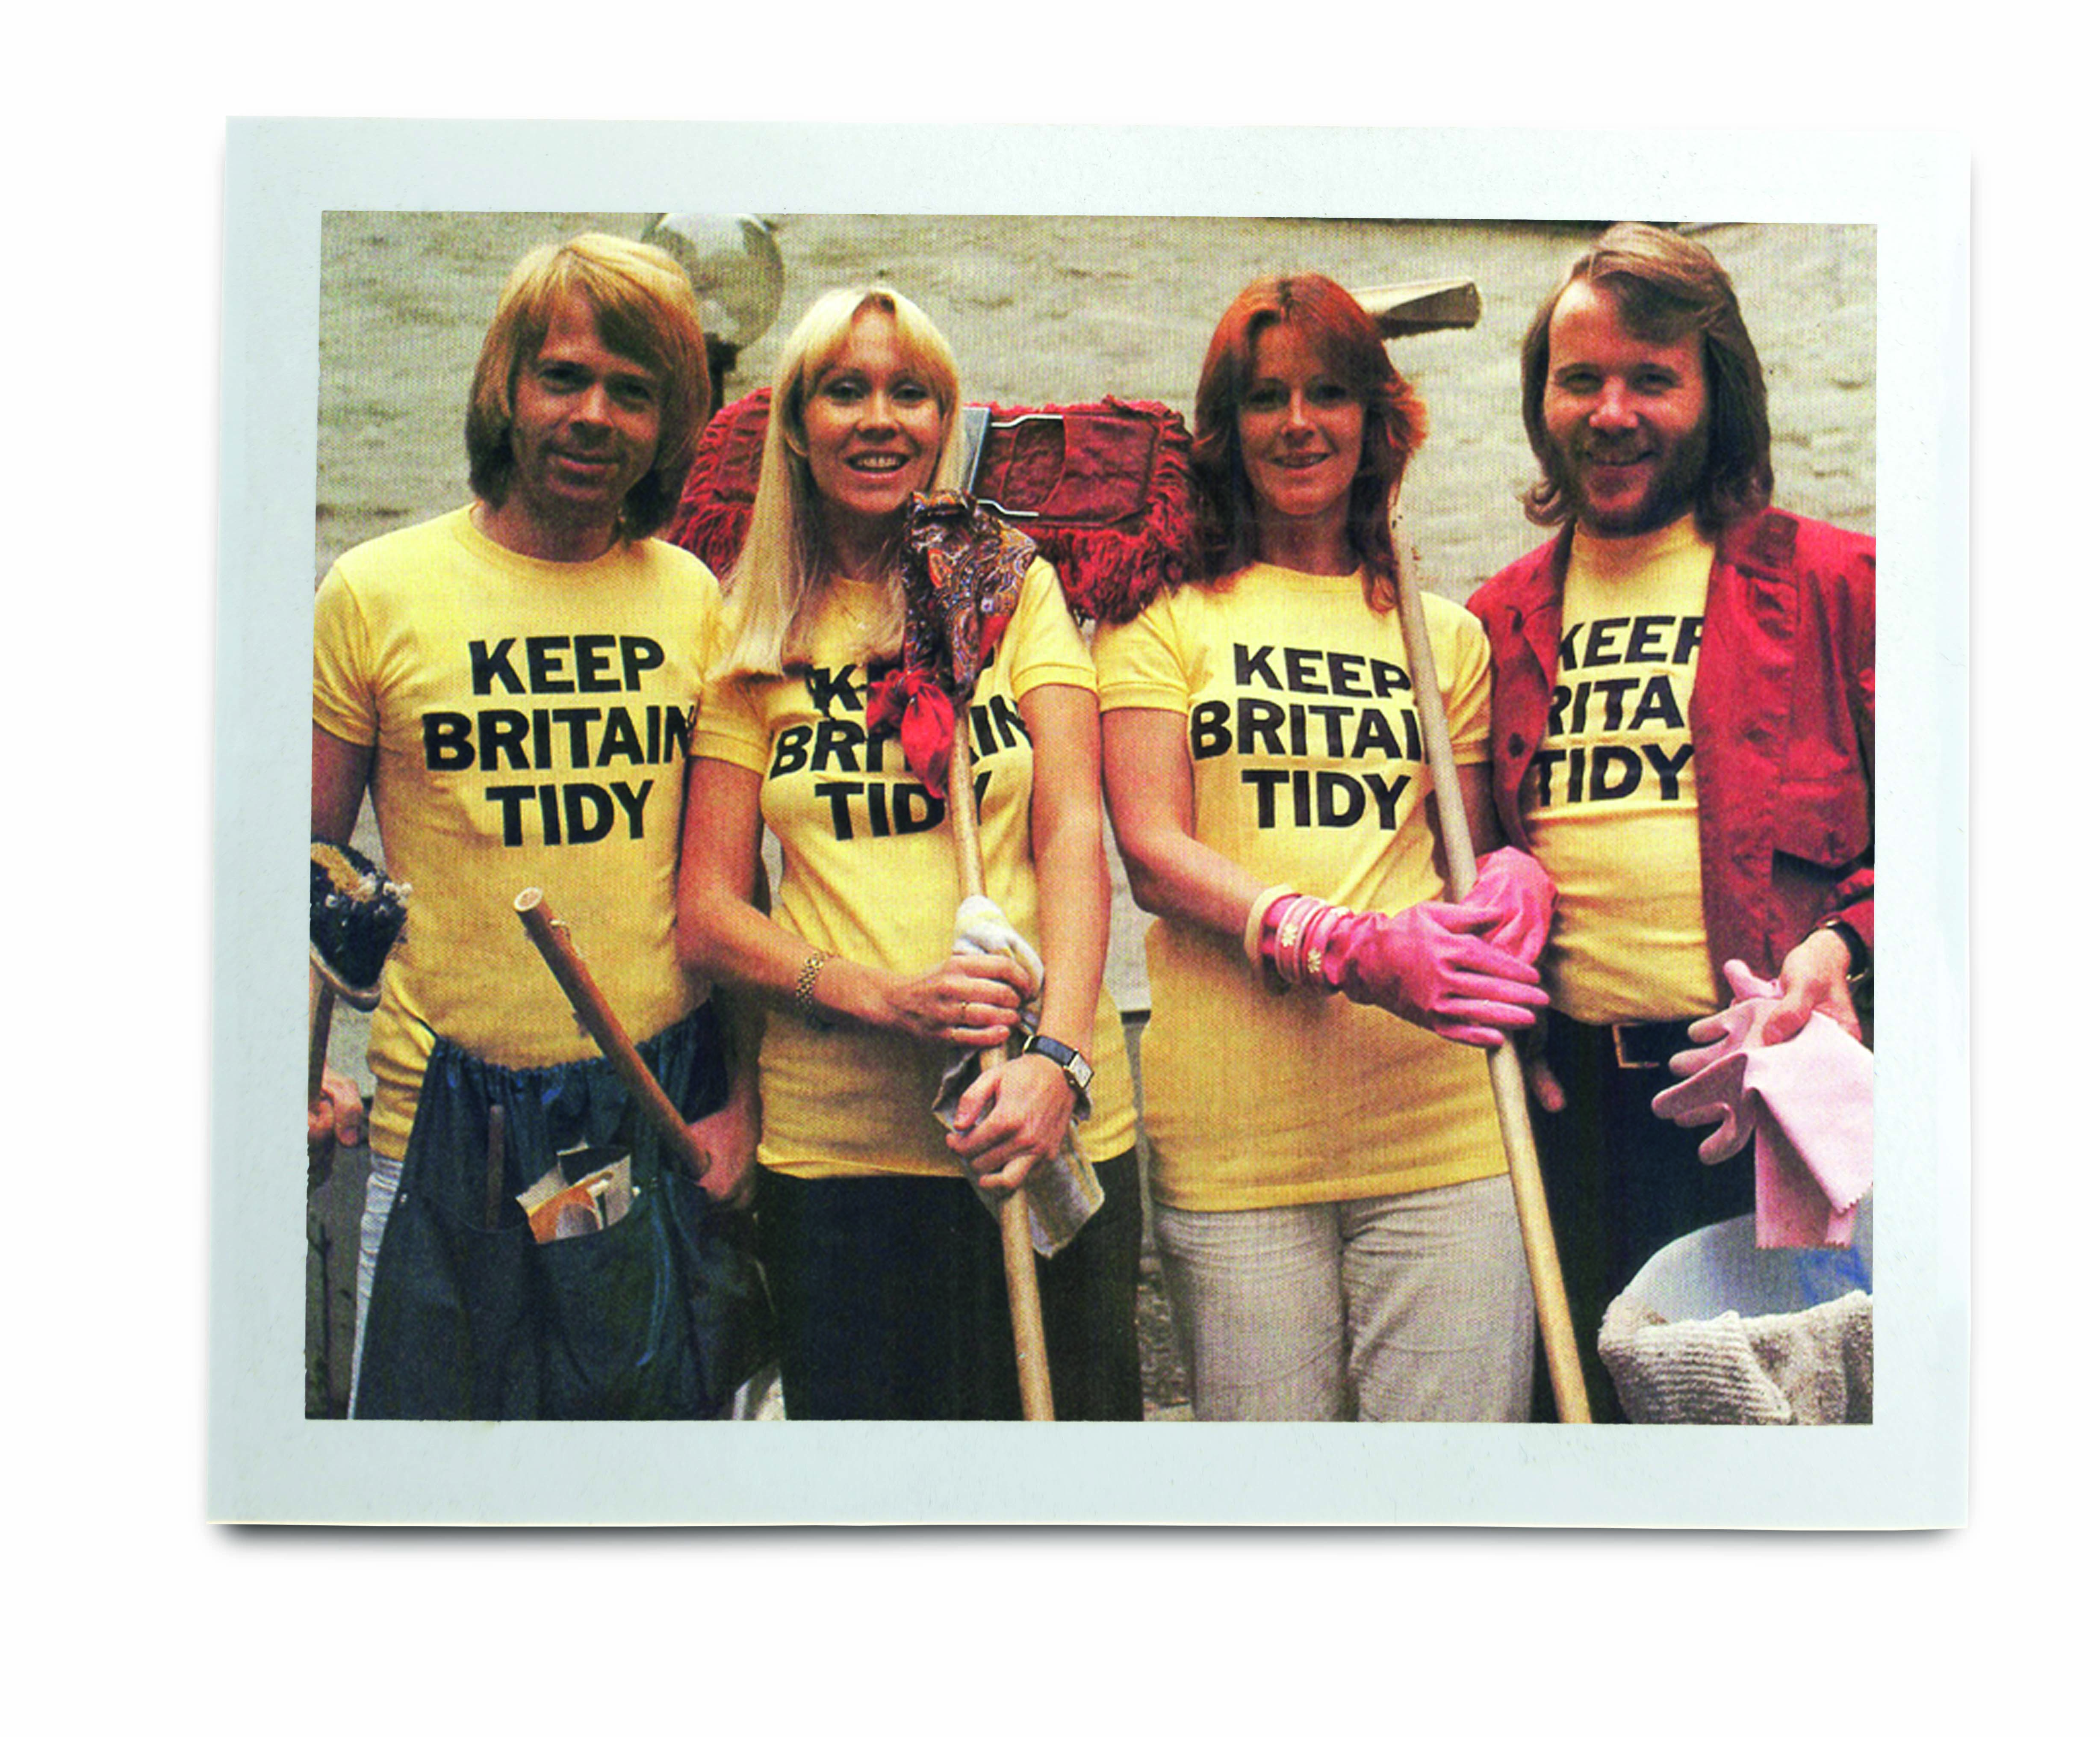 An image of ABBA wearing Keep Britain Tidy t-shirts